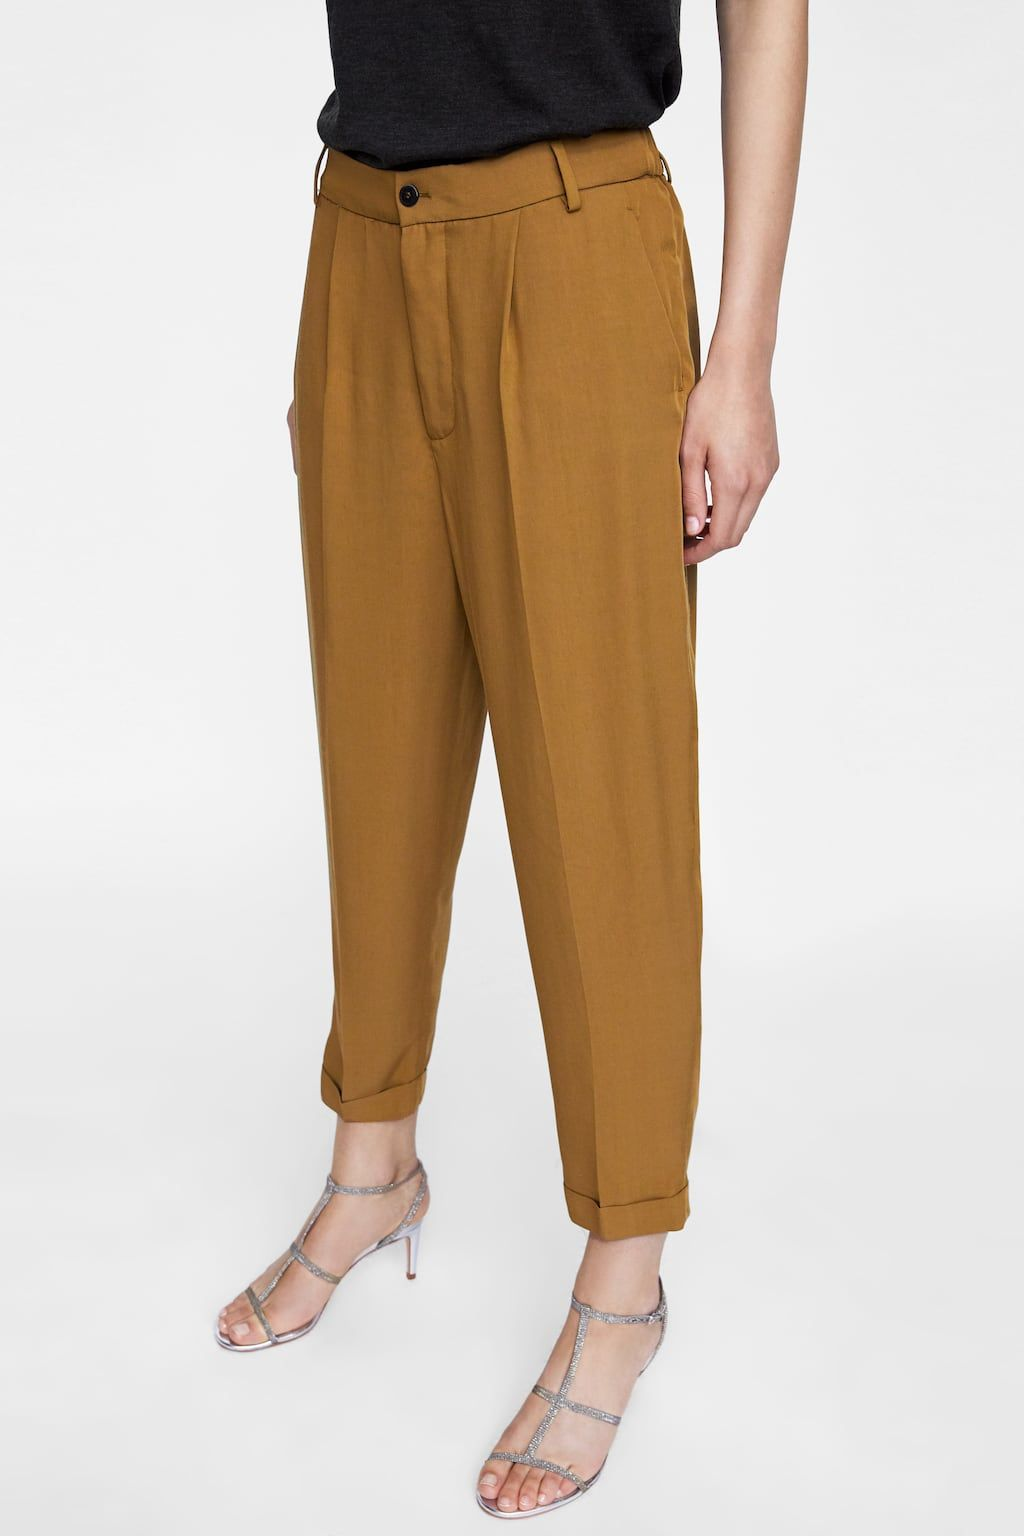 968e58b1 Image 2 of ELASTIC WAIST TROUSERS from Zara | zafari in 2019 ...